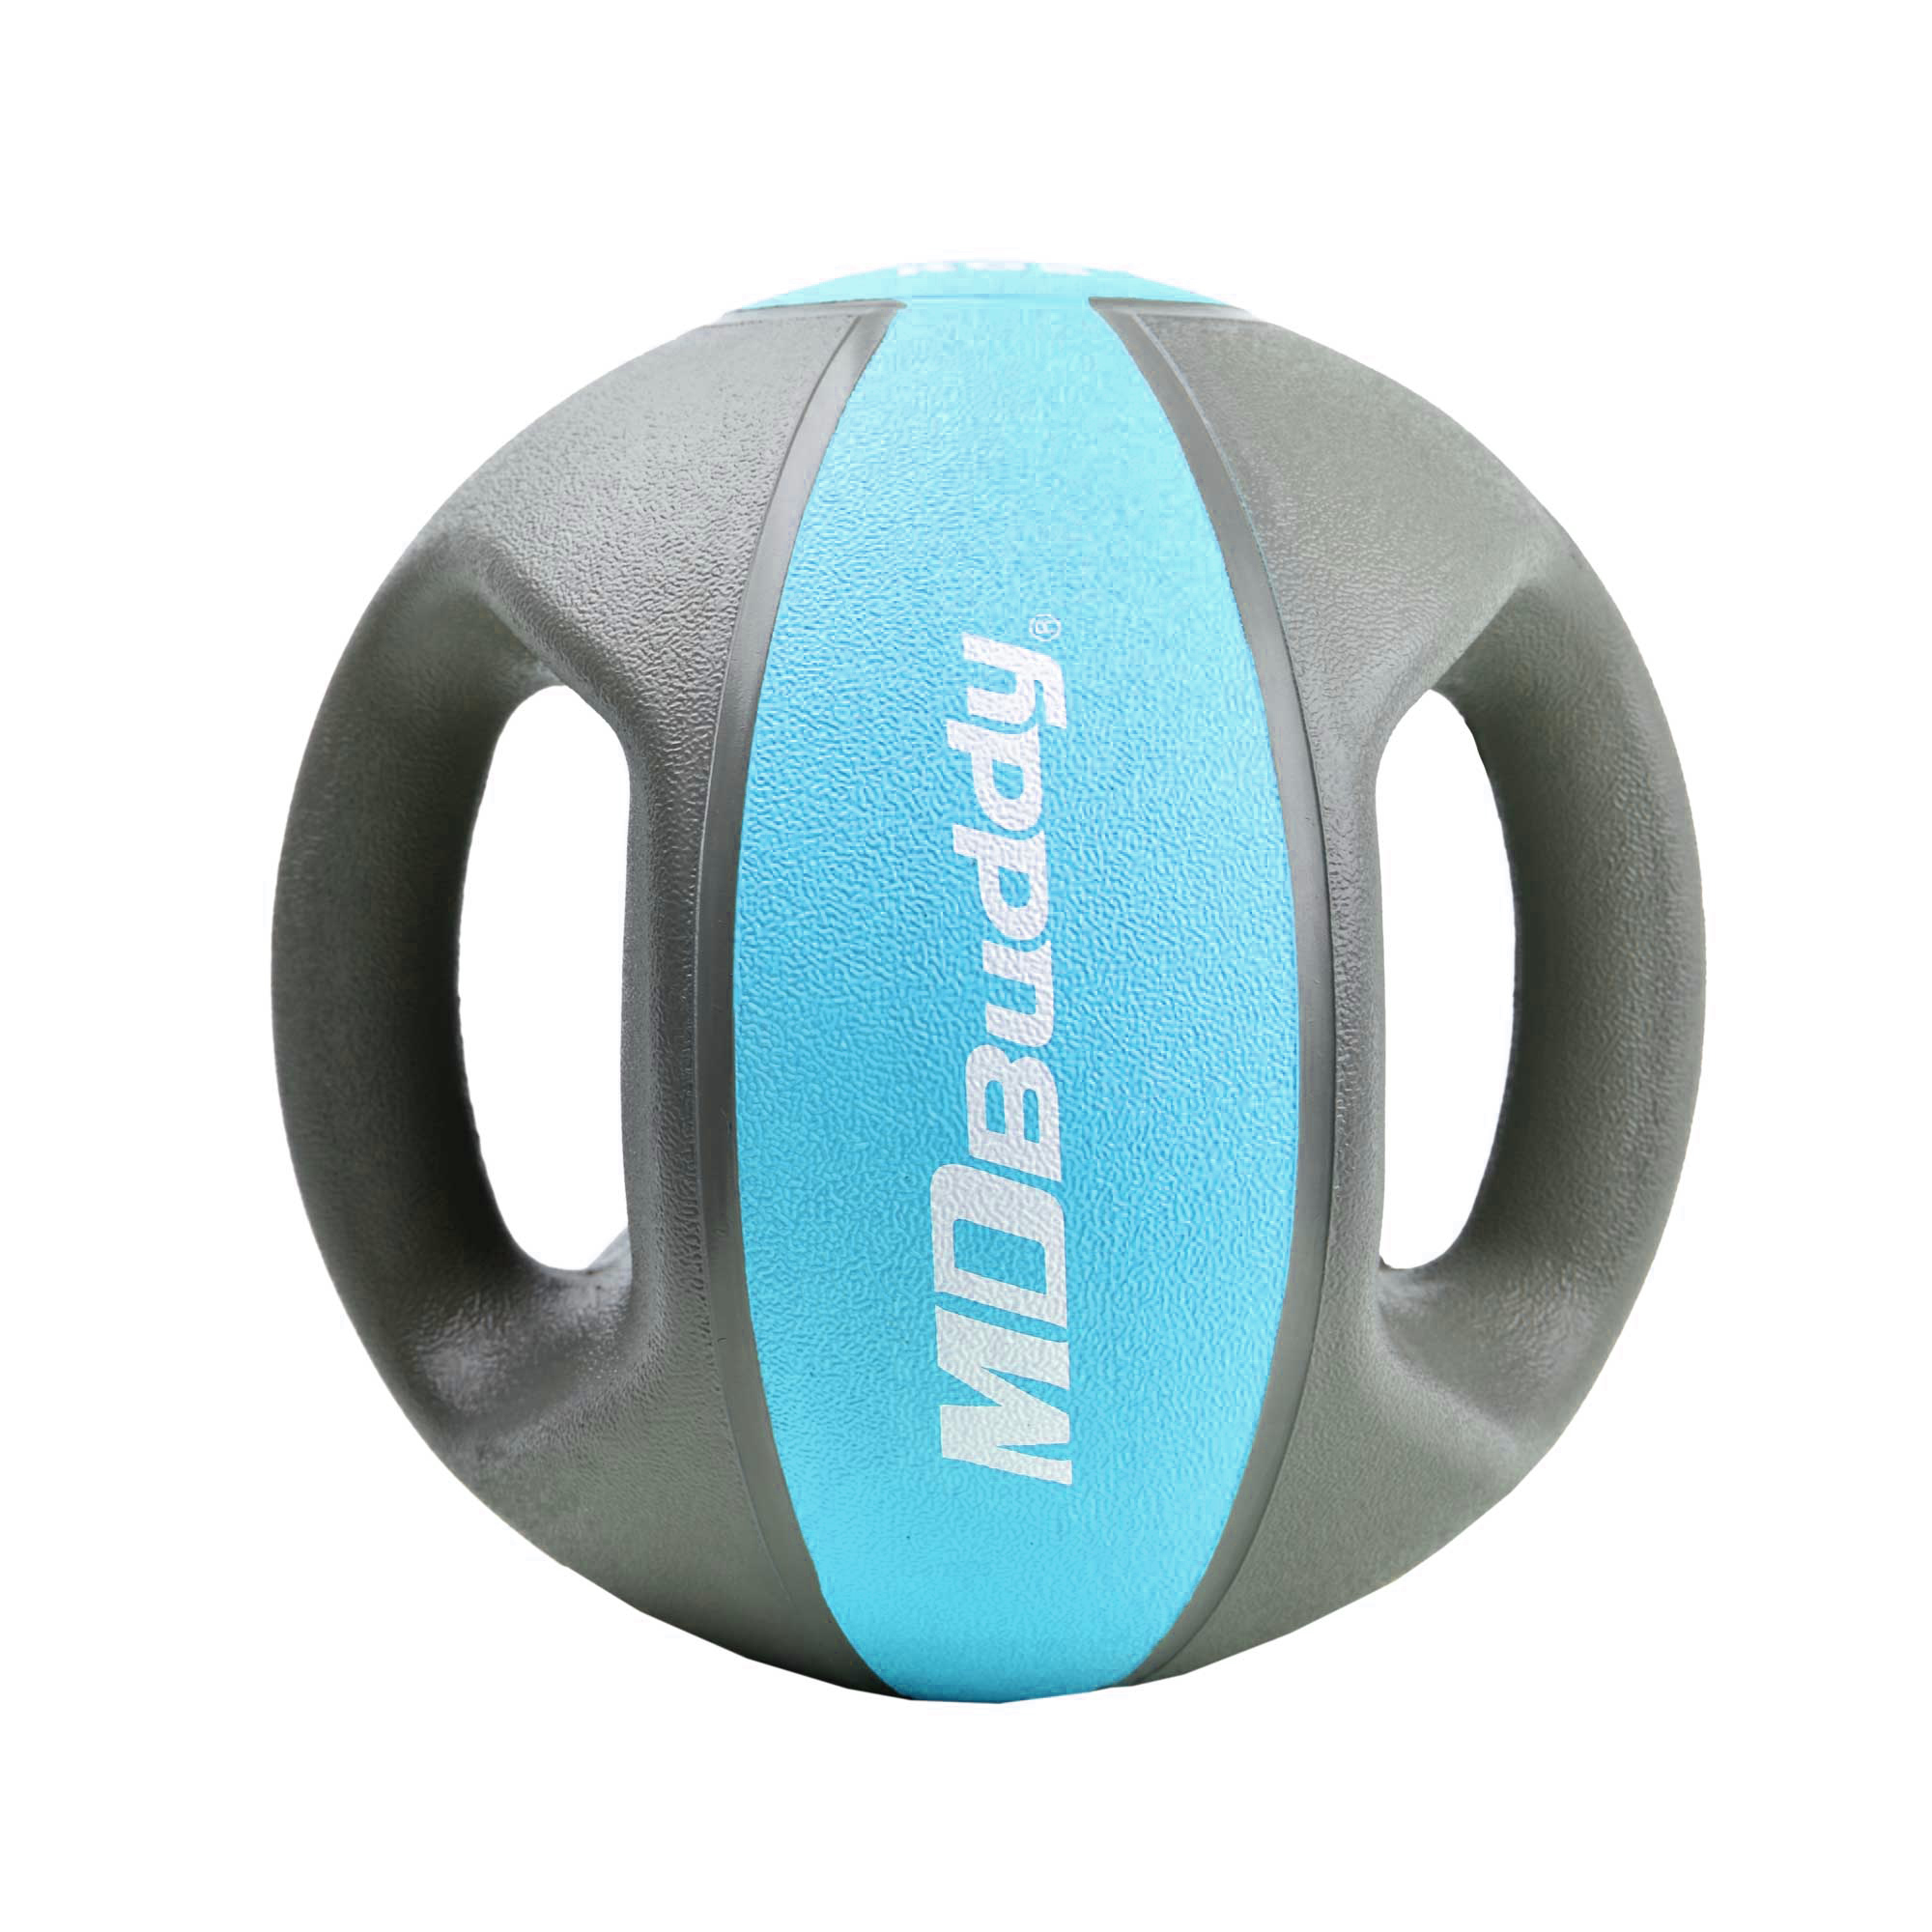 MDBUDDY MD1213 DOUBEL GRIP WEIGHTED MEDICINE BALL – 5KG